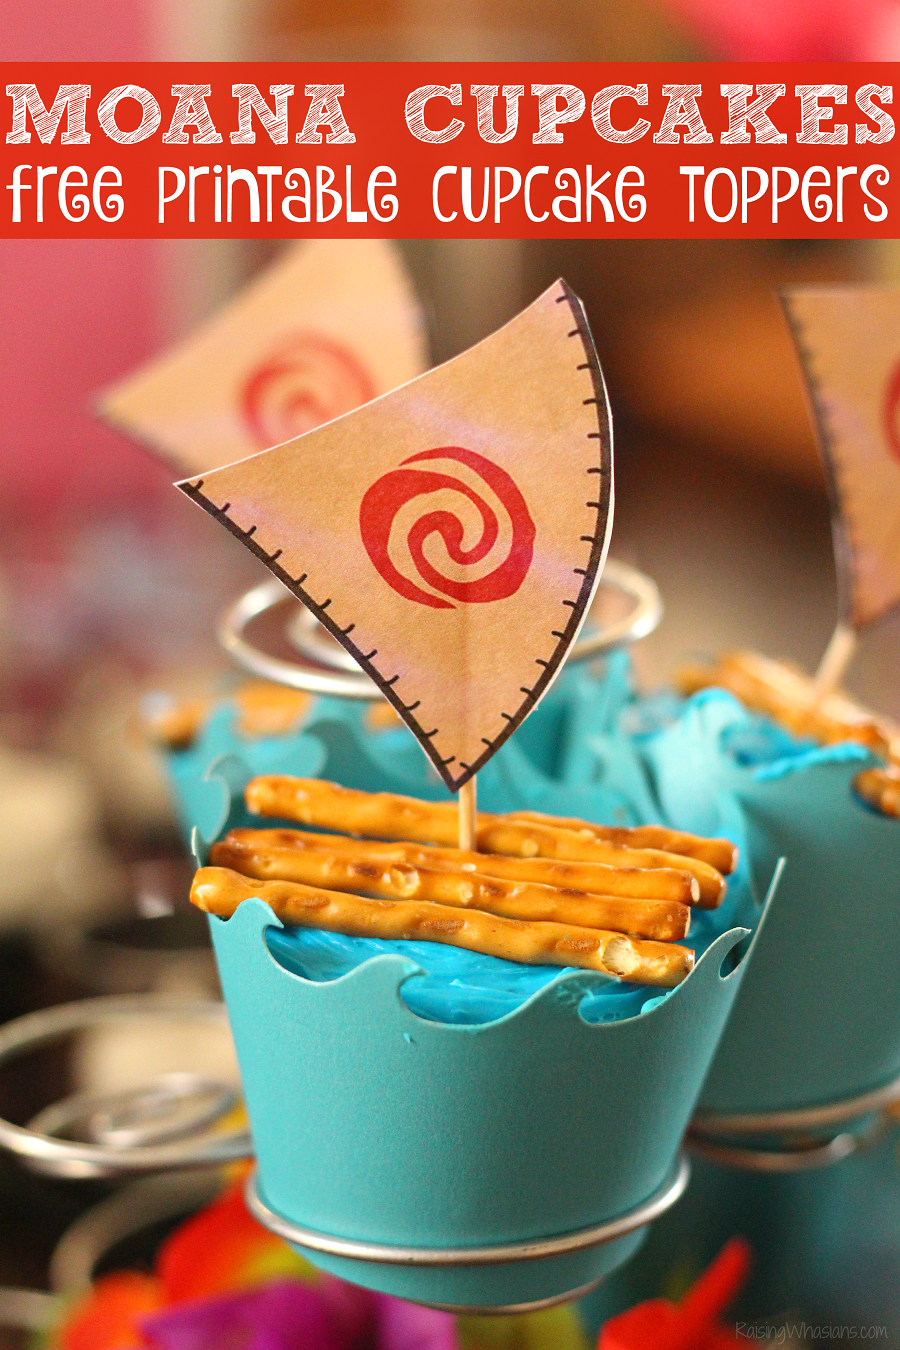 Free Moana cupcake toppers